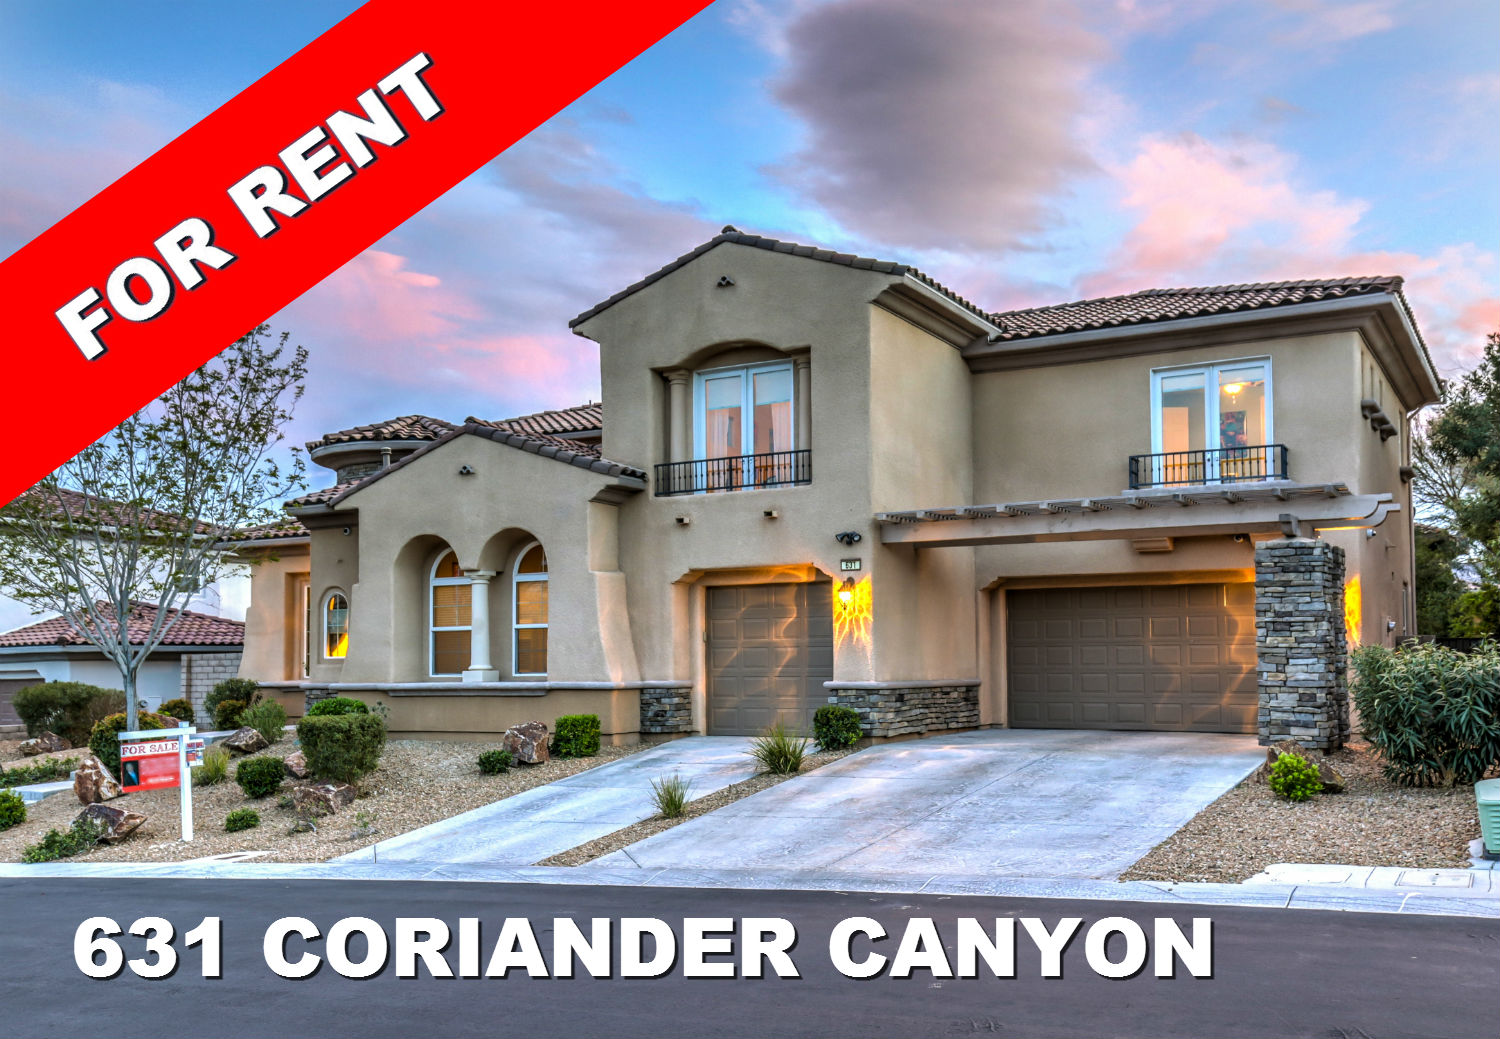 for rent 631 coriander canyon in summerlin nathan robart real estate blog robart realty group